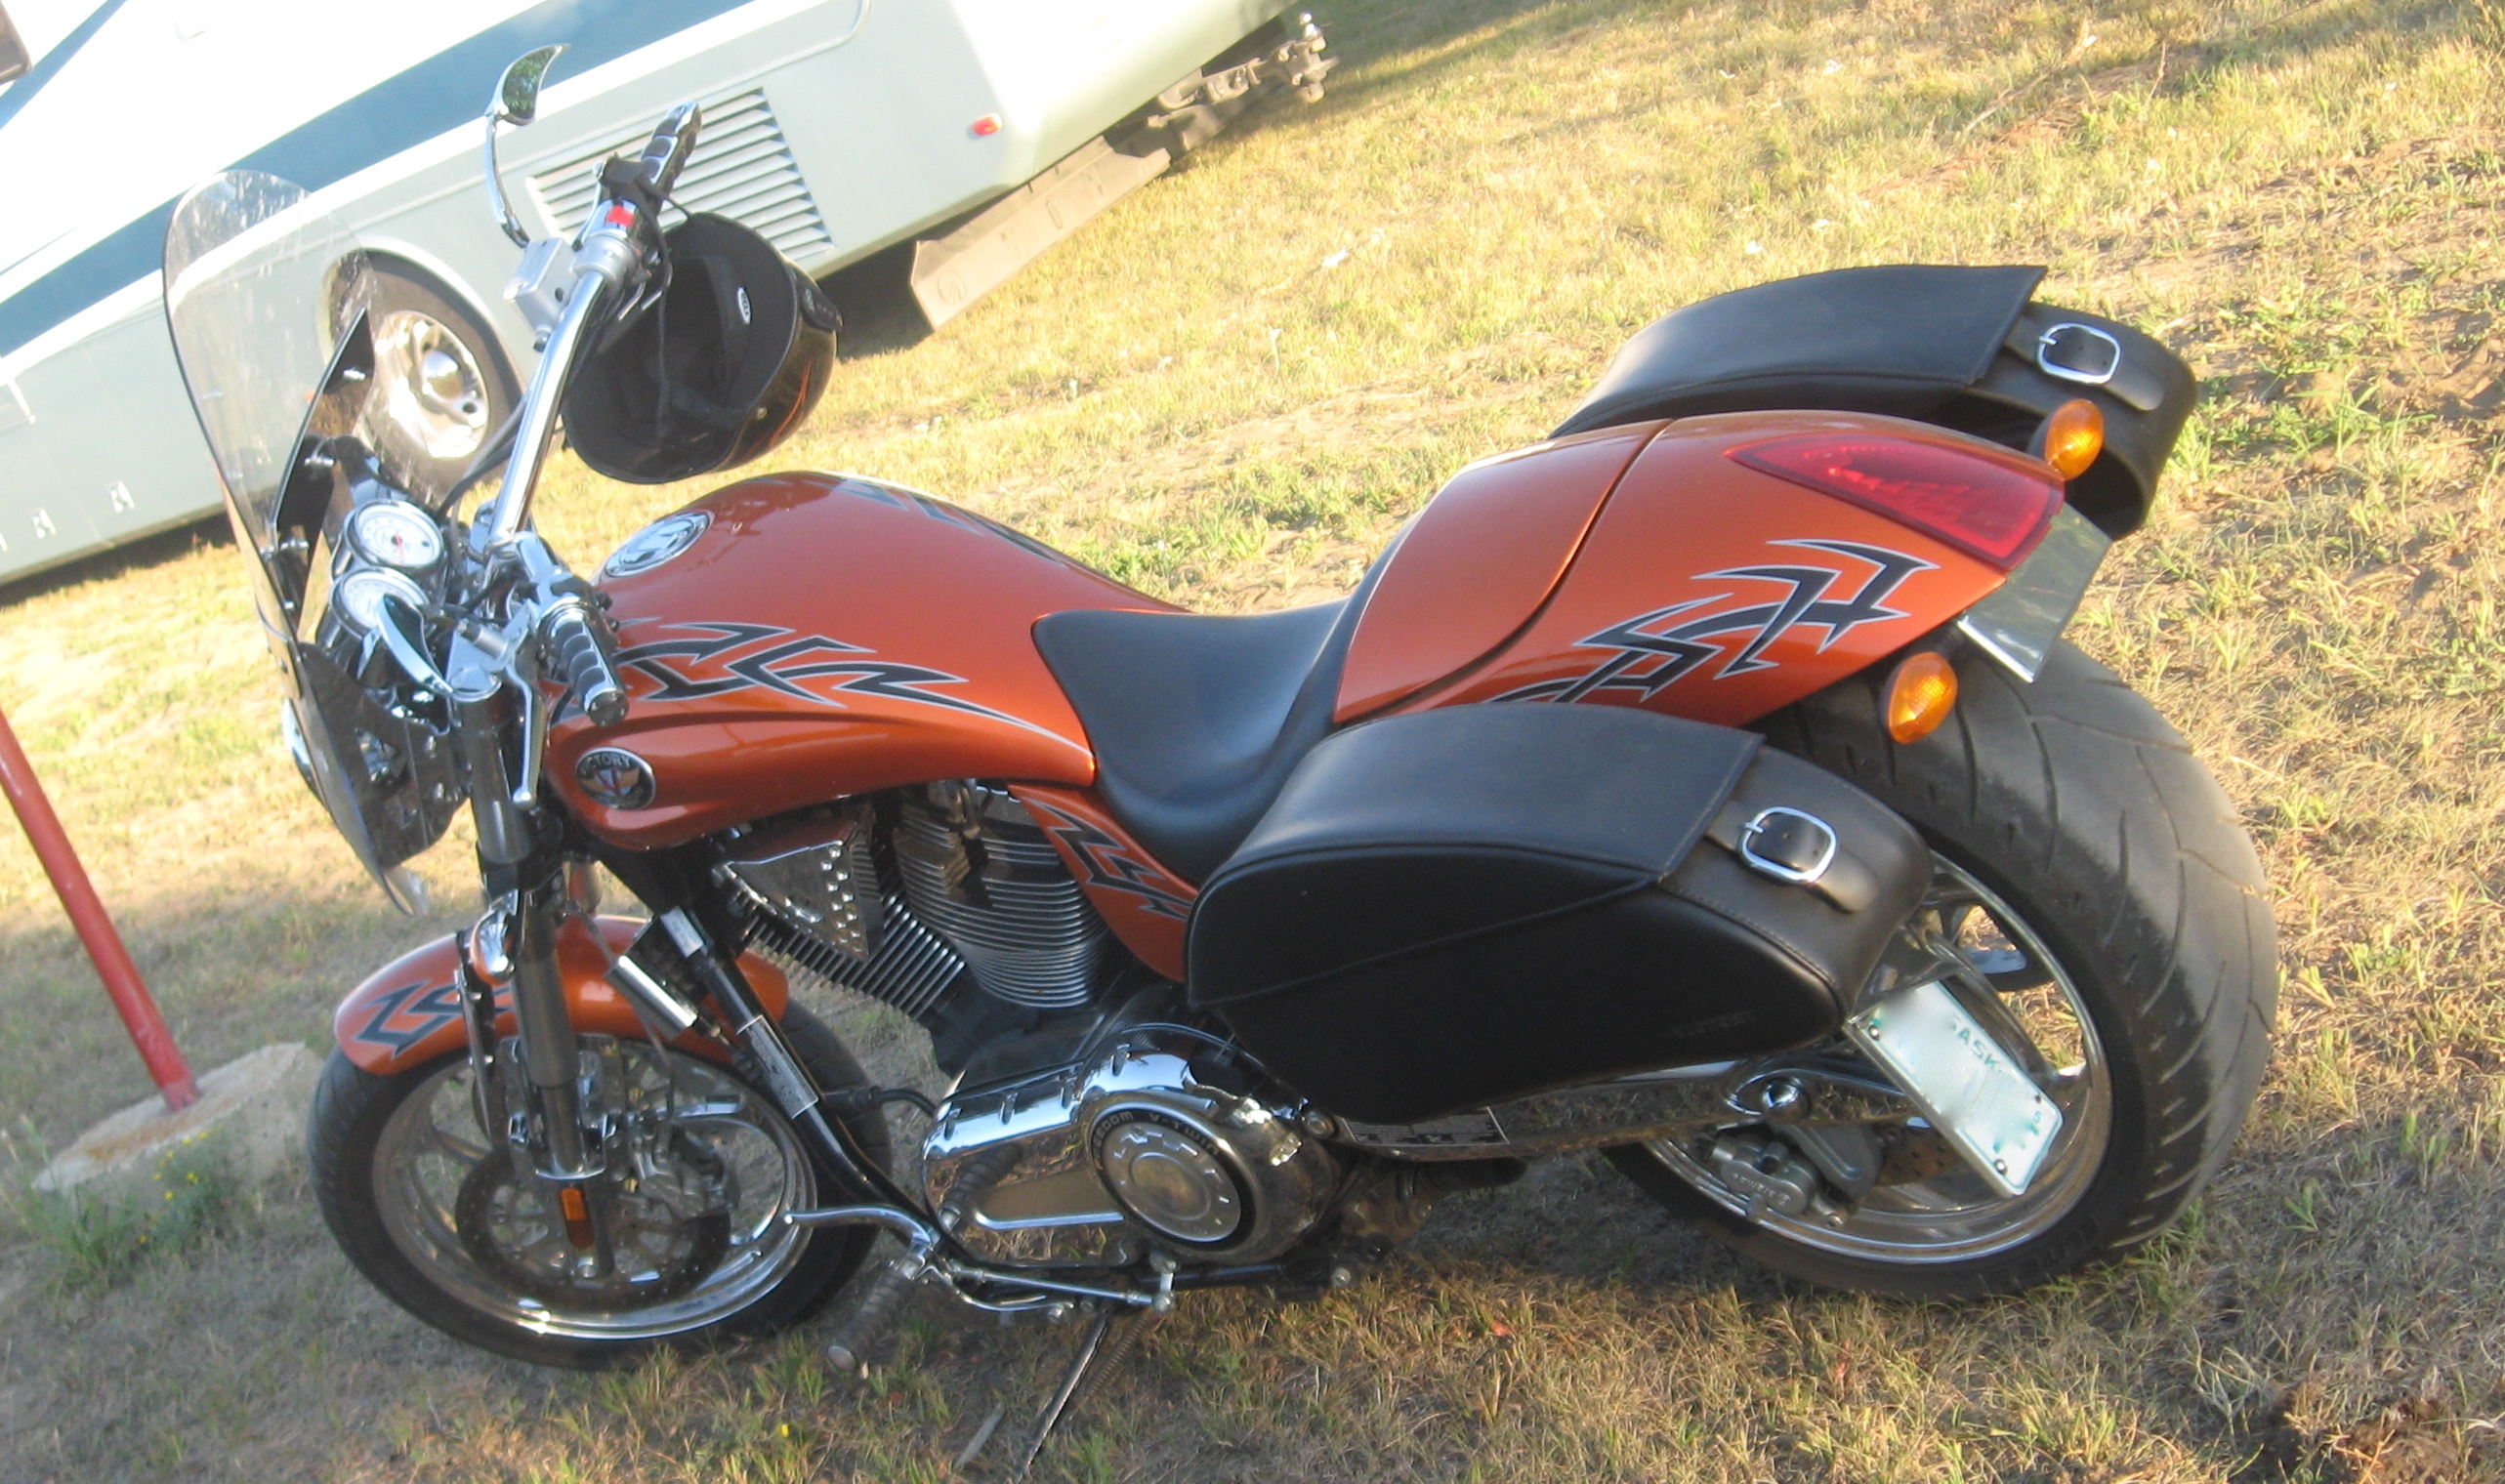 Victory Cruiser Deluxe 1500 1999 images #129320